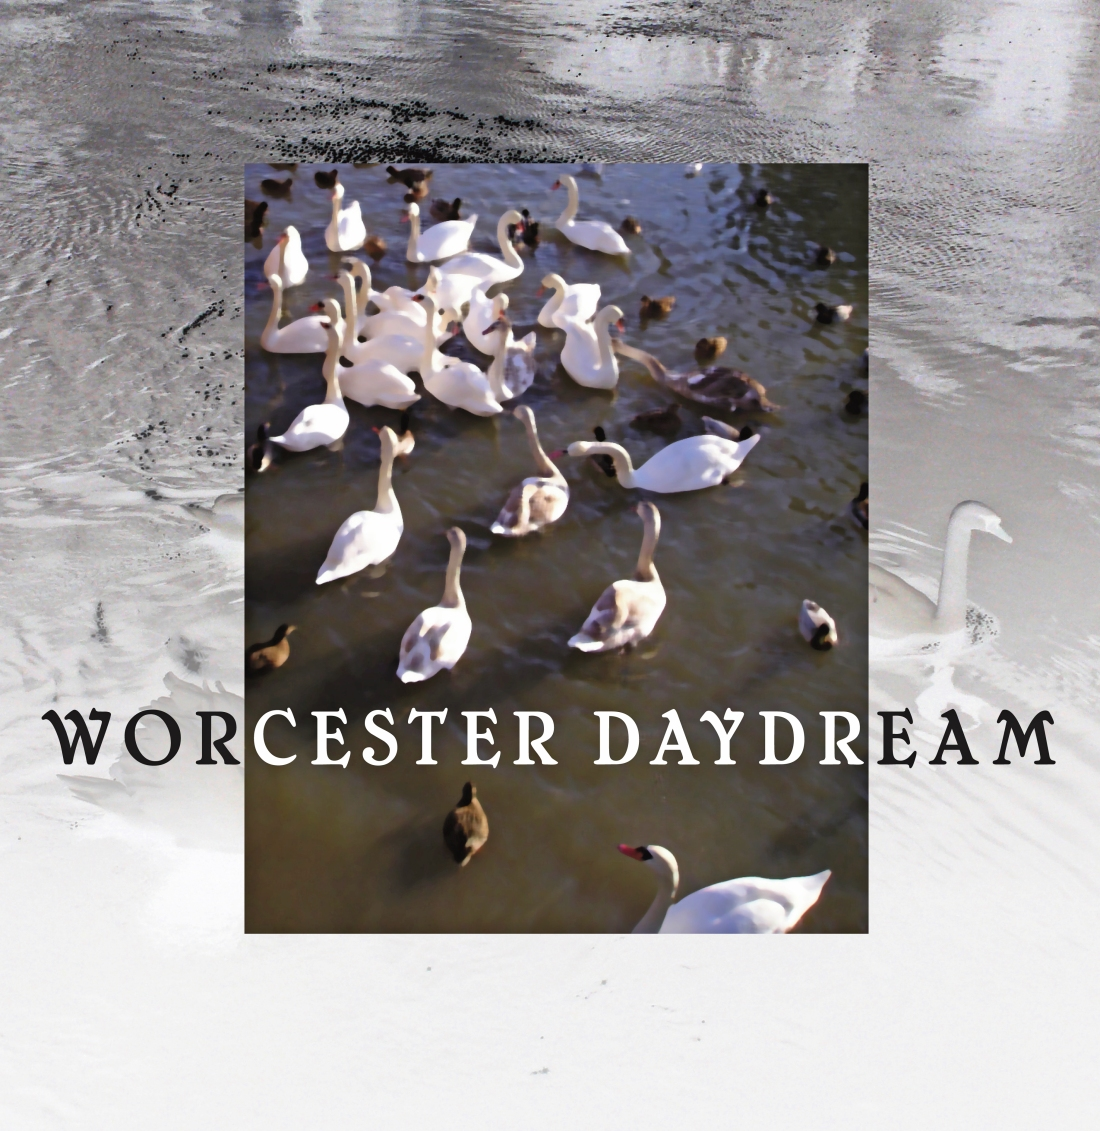 WORCESTER DAYDREAM - PODCAST PAGE